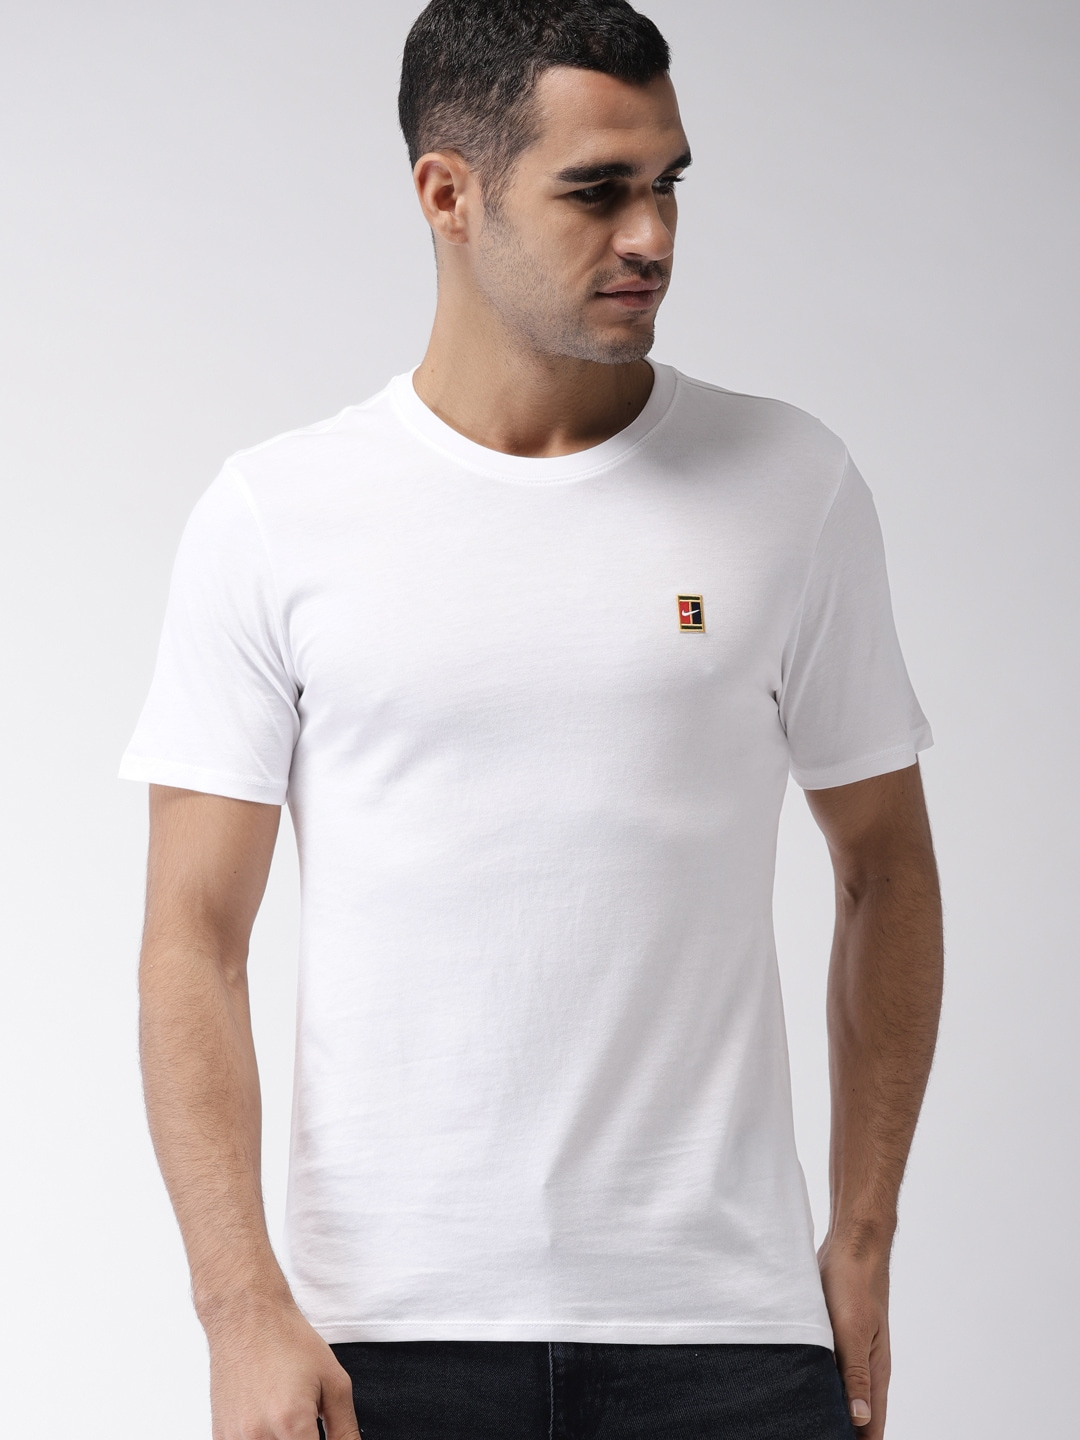 54592a3f074 Nike Clothings for Men   Women - Buy Nike Apparels Online - Myntra